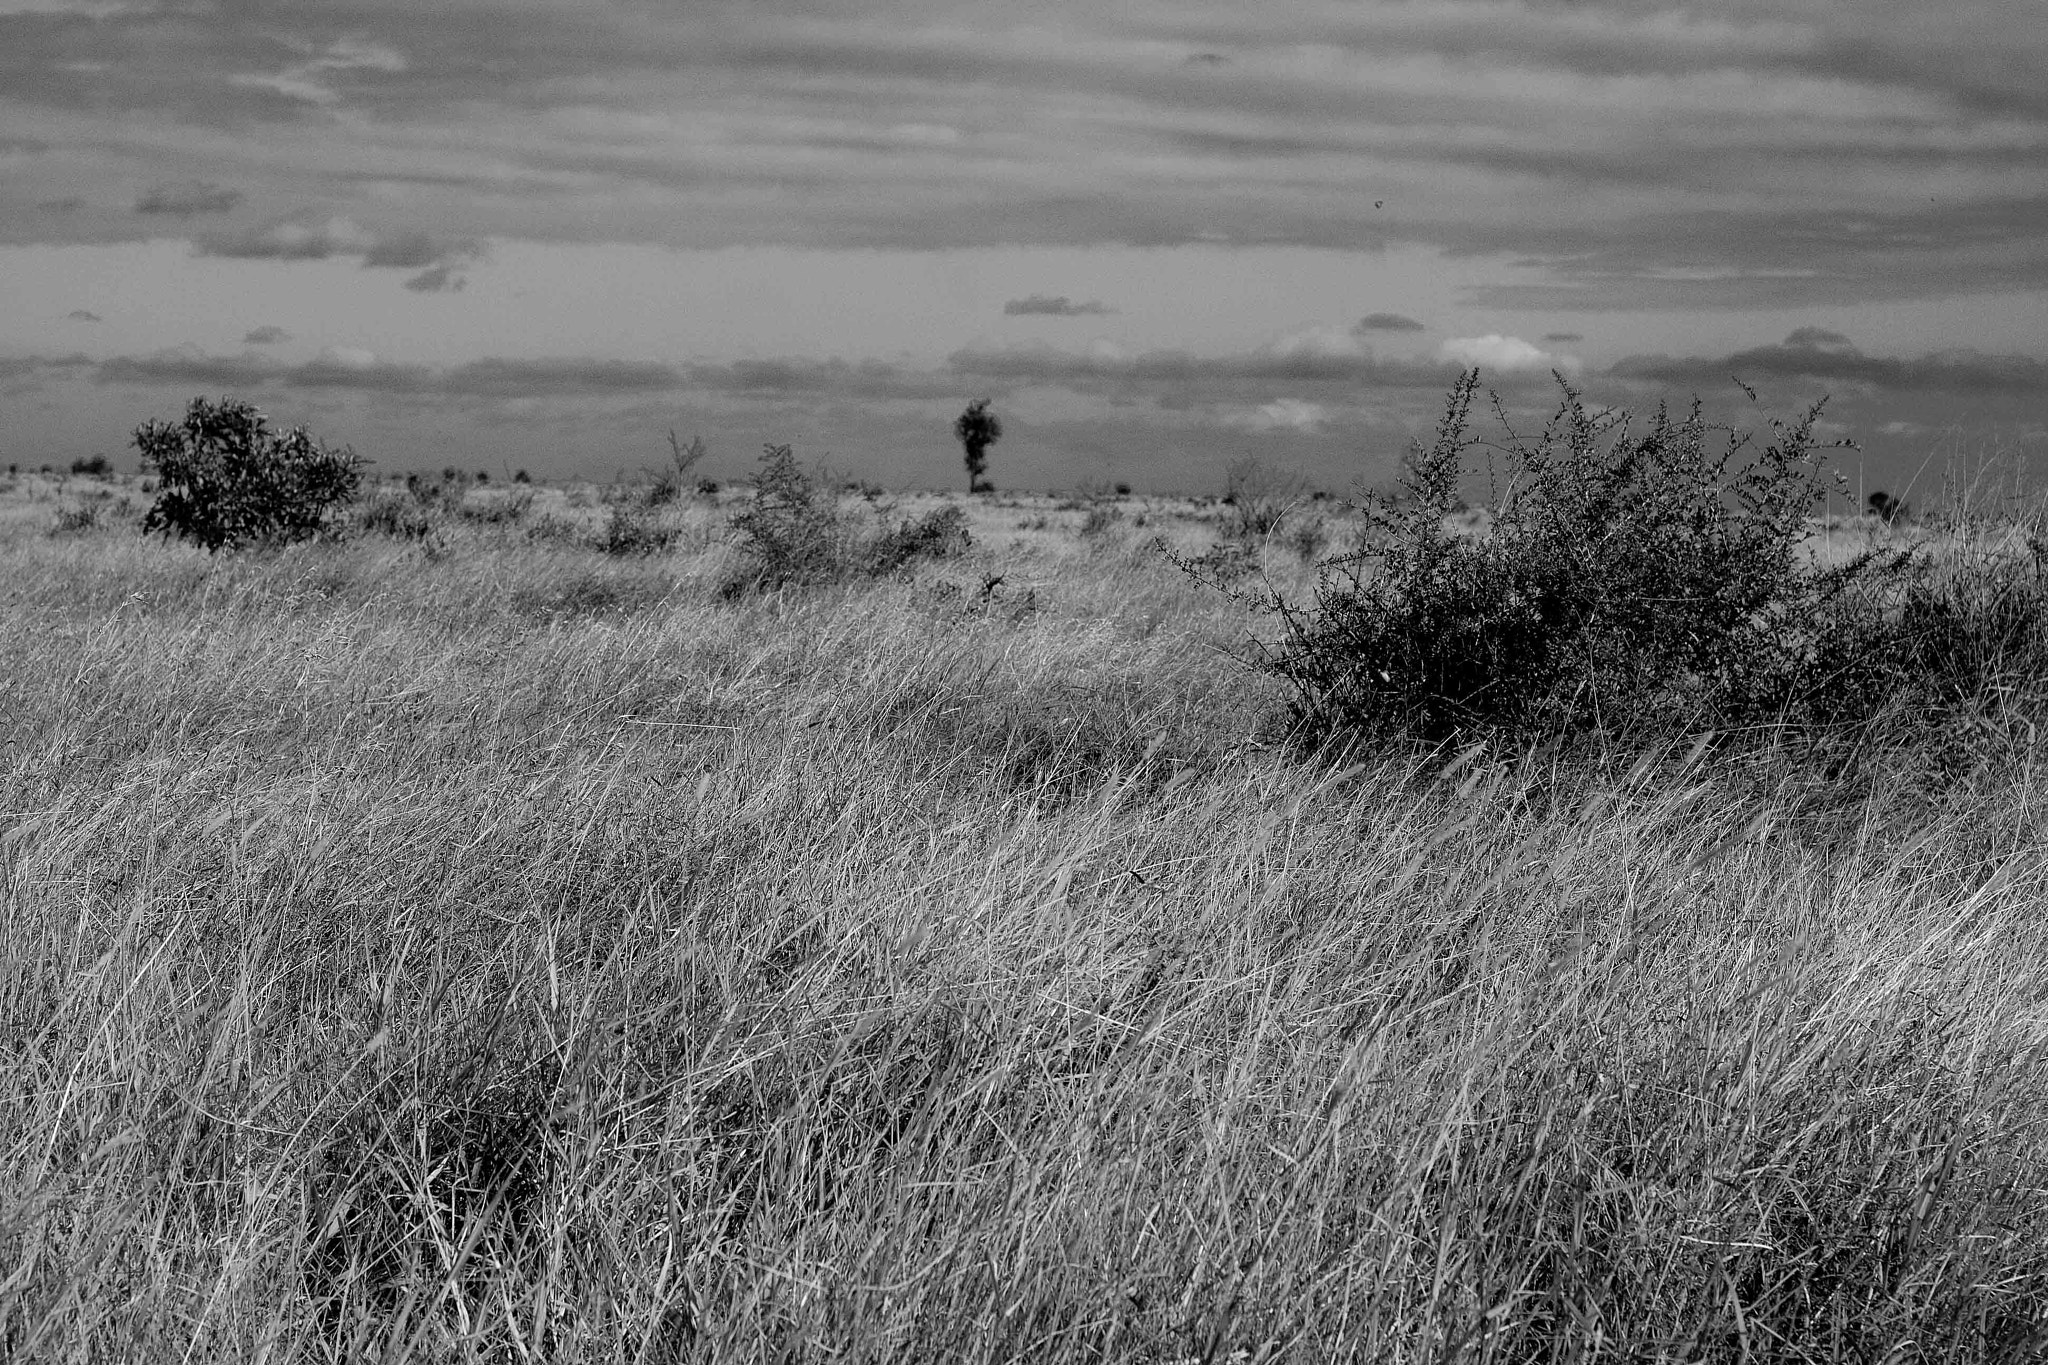 Photograph Moody Kruger Landscape by Nelis Nienaber on 500px